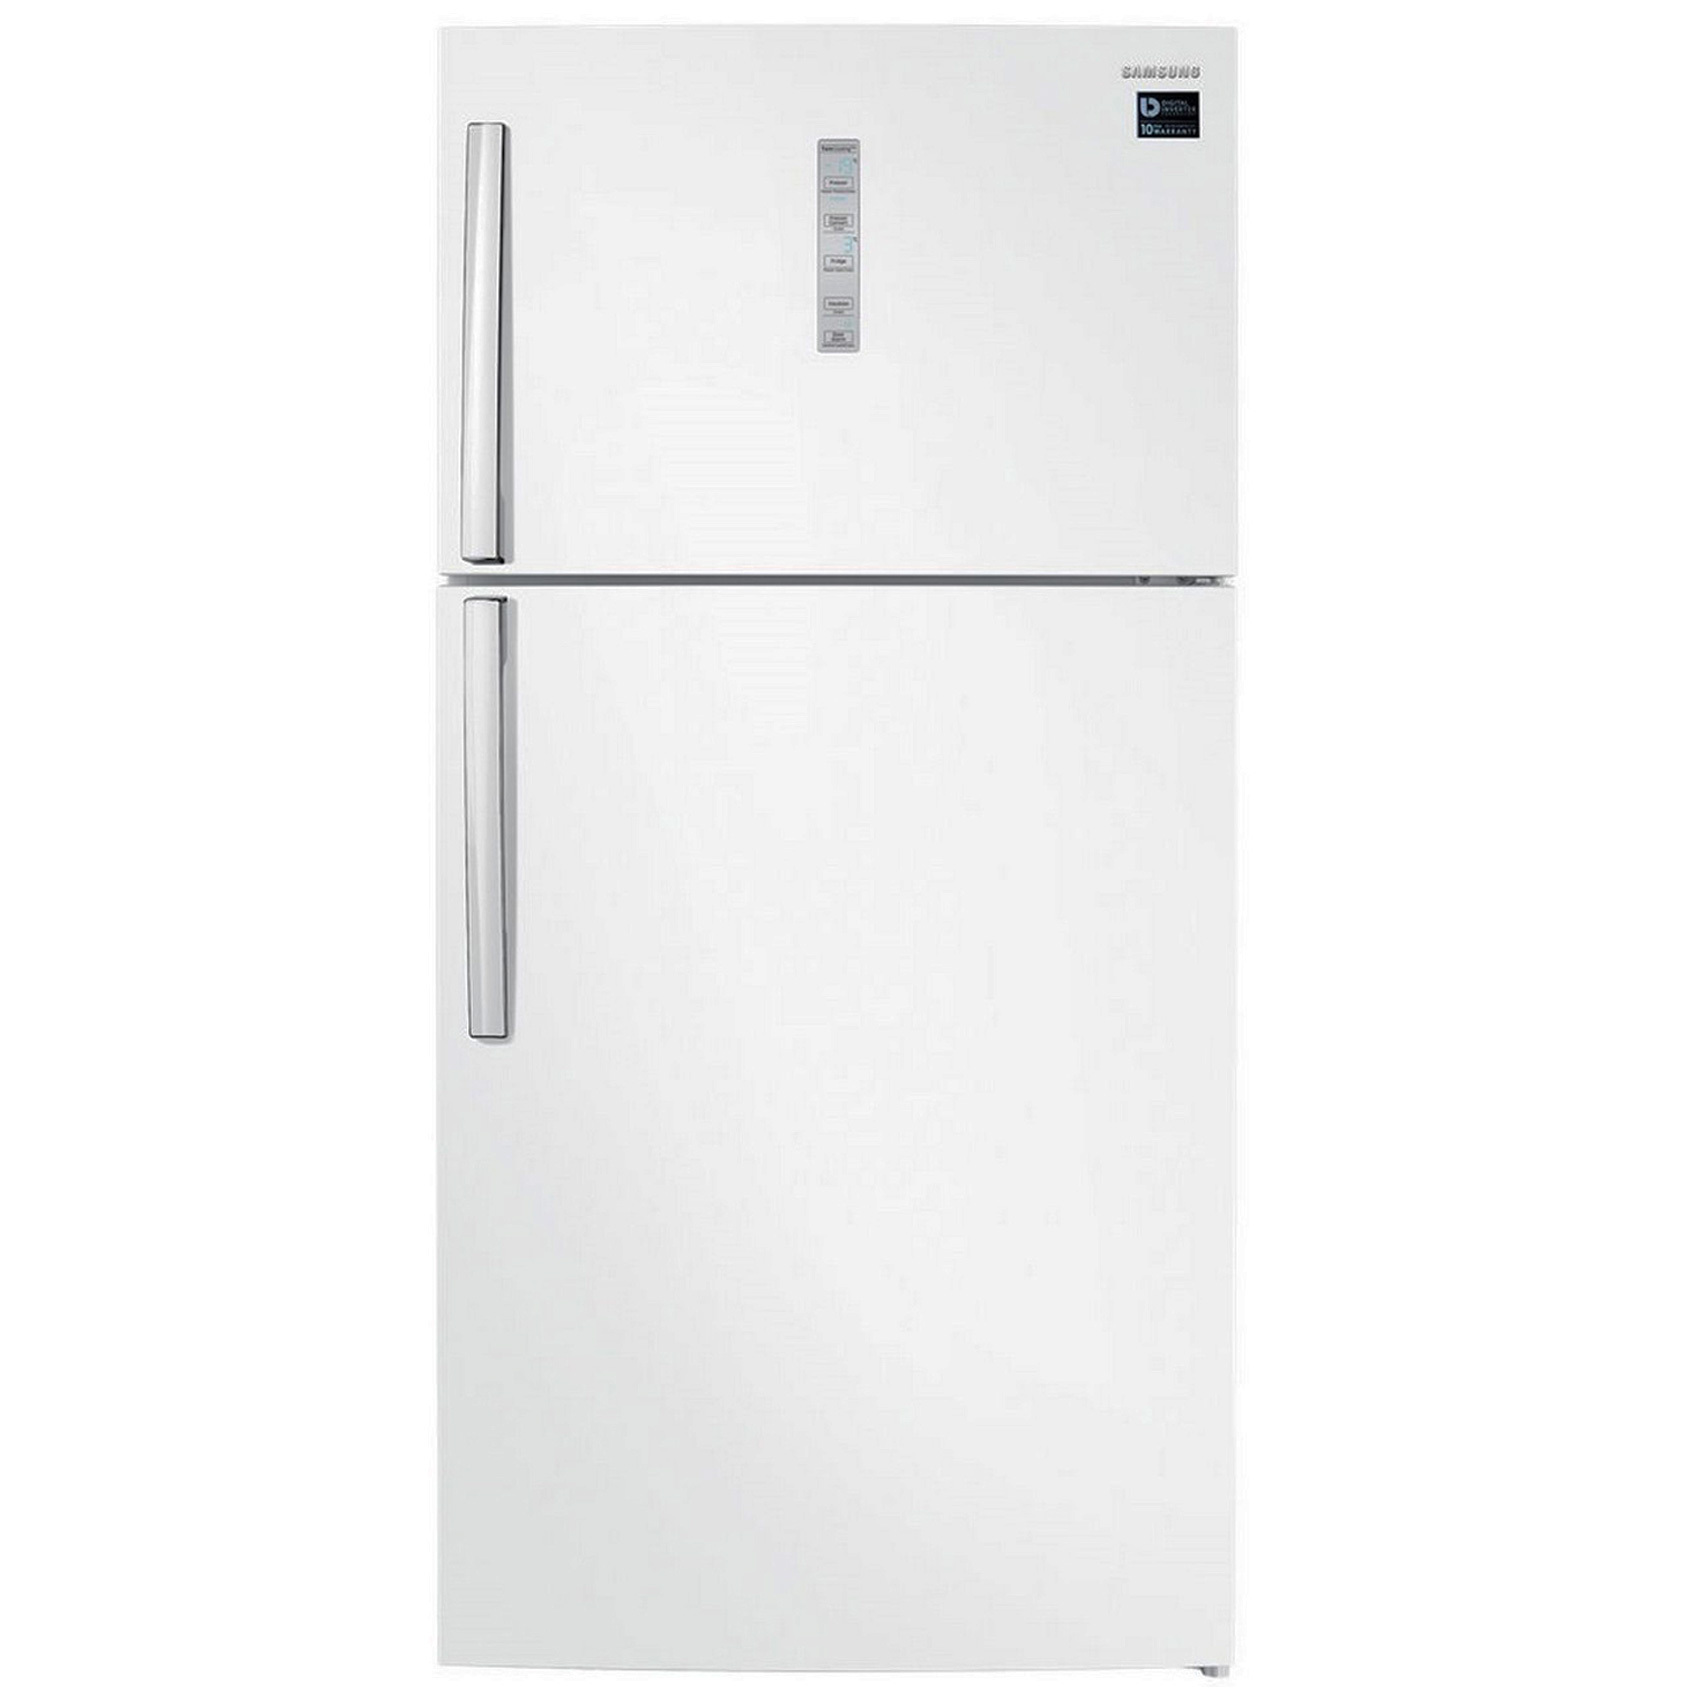 SAMSUNG FRIDGE RT81K7010WW 810L